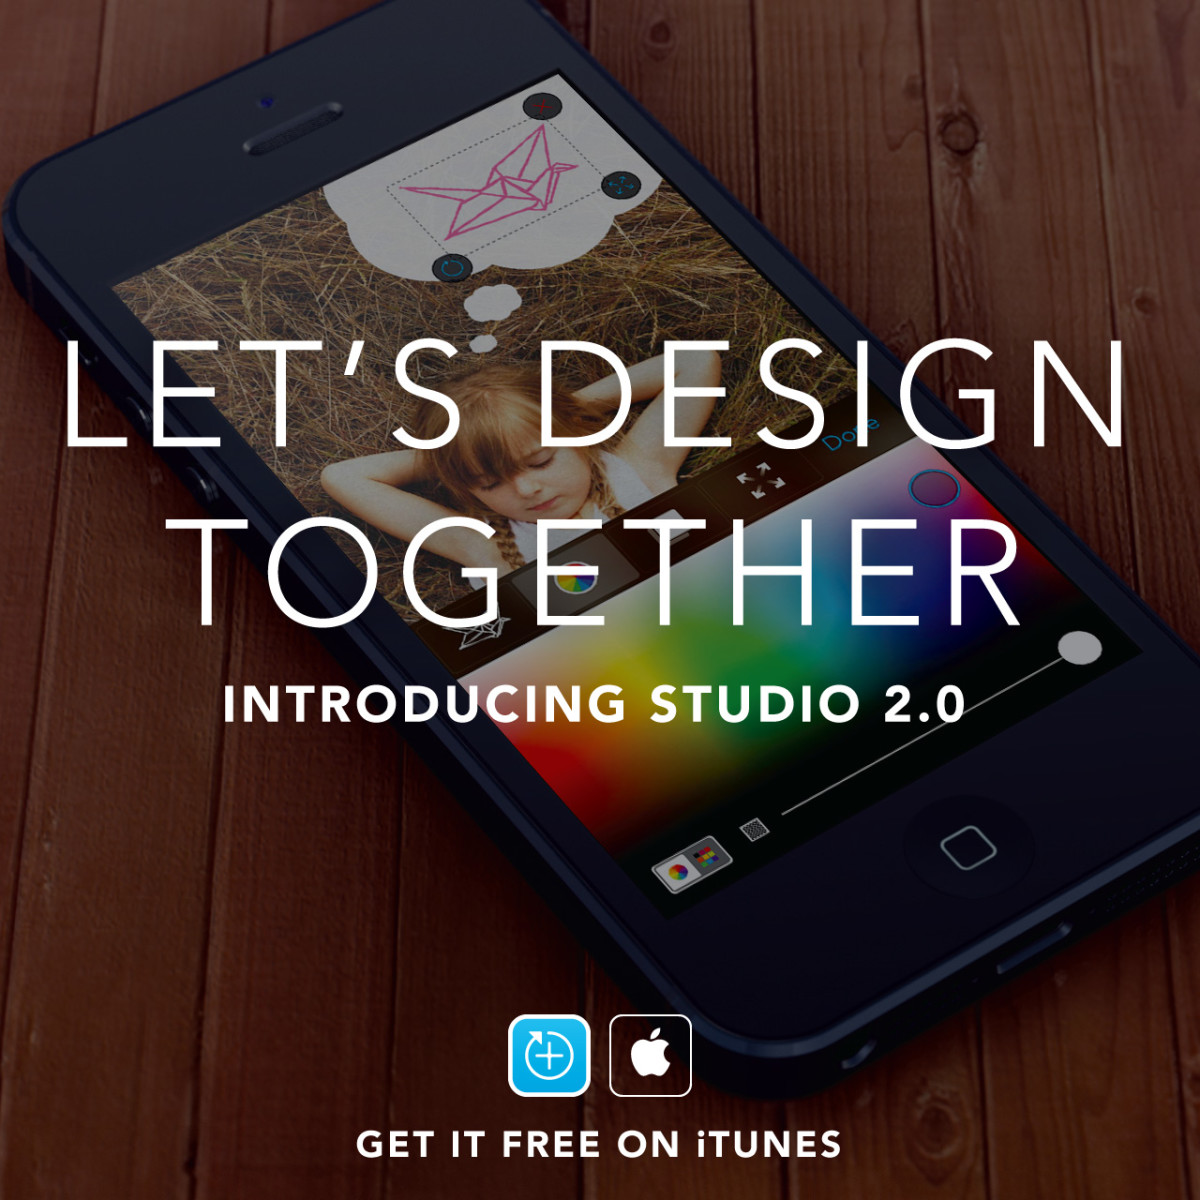 Win an iPhone 5S from Studio Design!